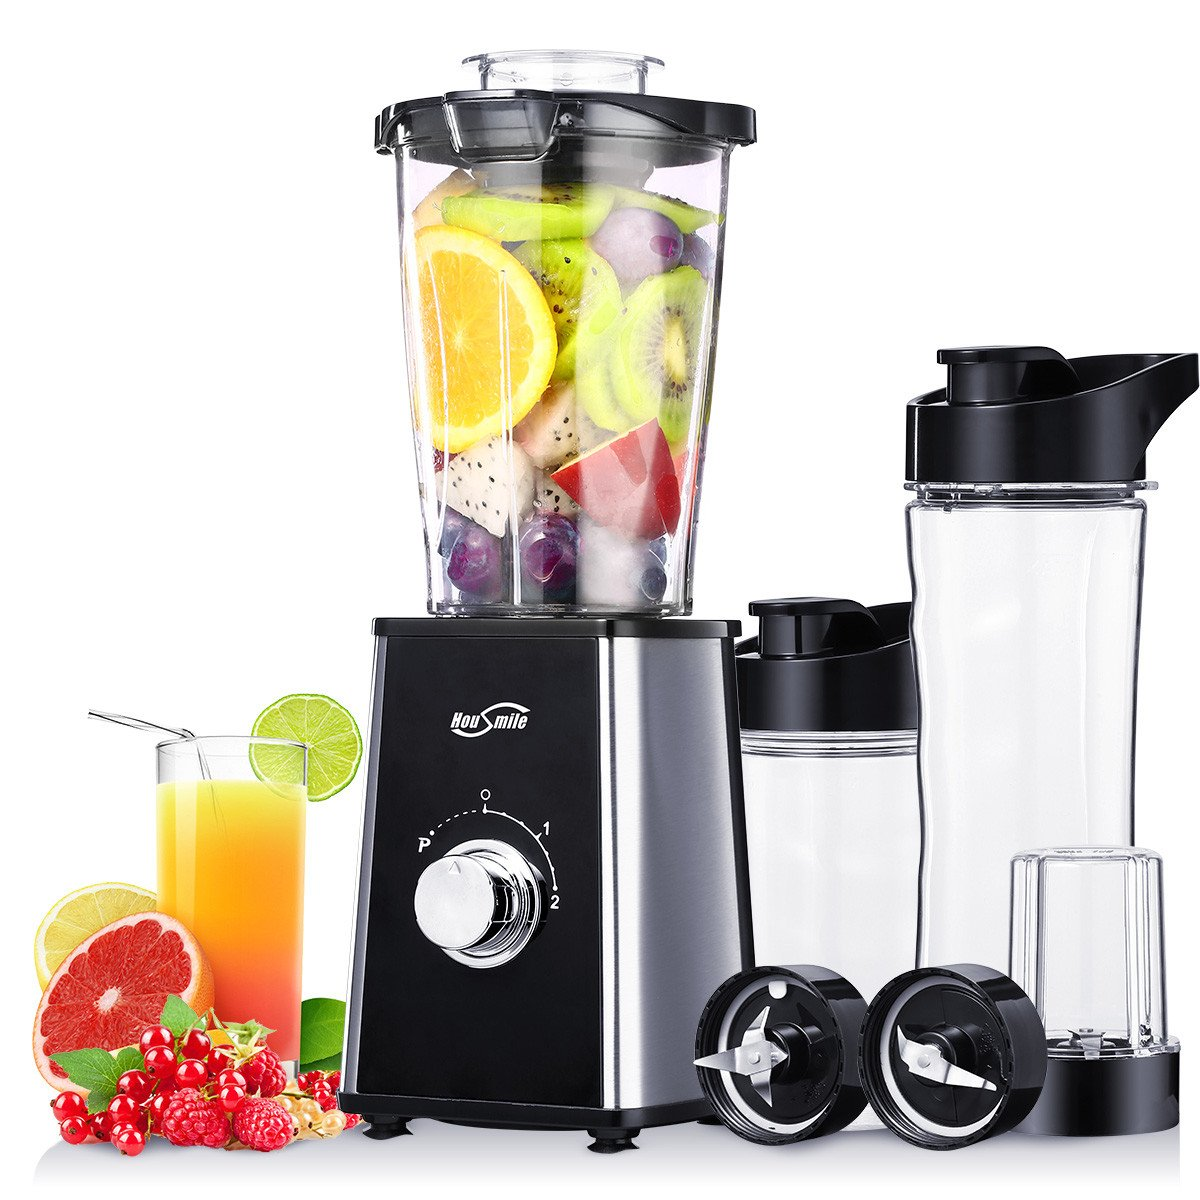 Personal Blender Housmile Fruits Extractor Smoothie Shake And Take 3 2 Bottle Juicer With Travel Lid Two Sport Black Kitchen Dining